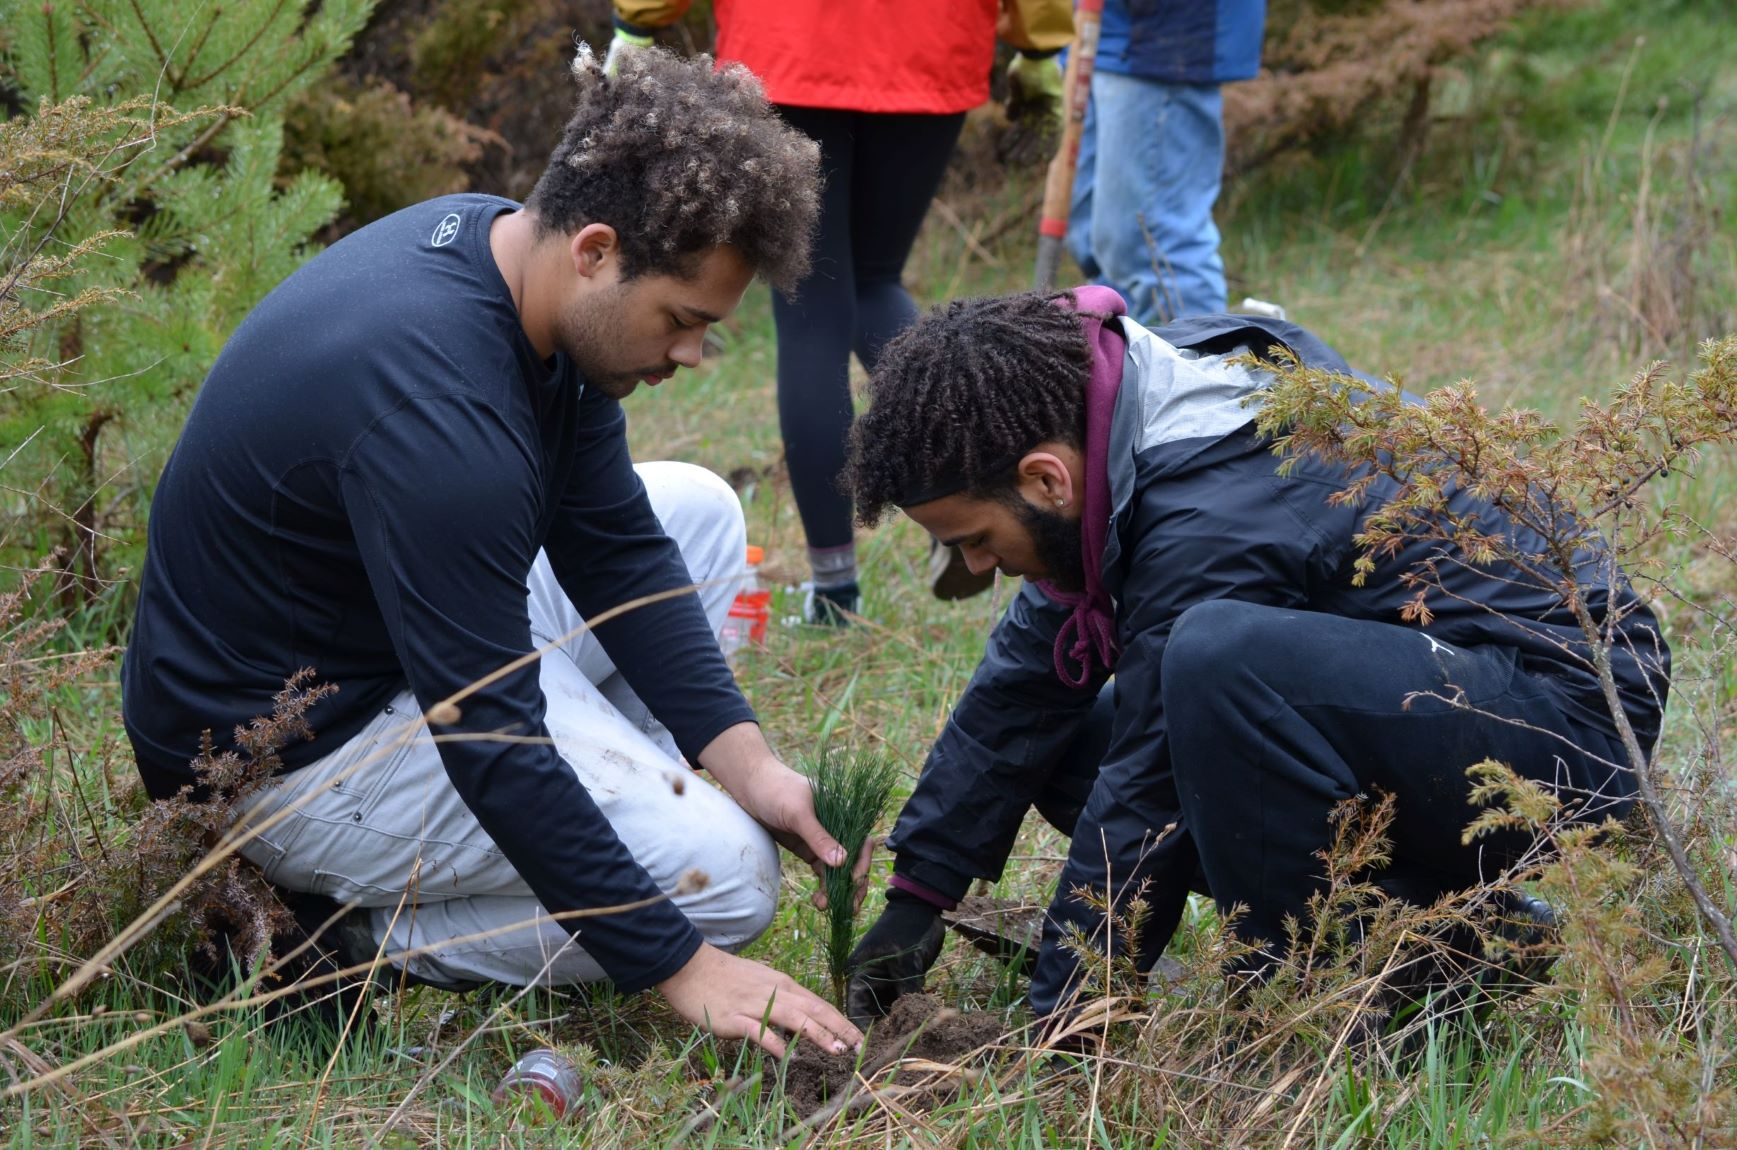 Sturgeon Bay High School students plant trees in Ellison Bay, WI on May 4, 2019.